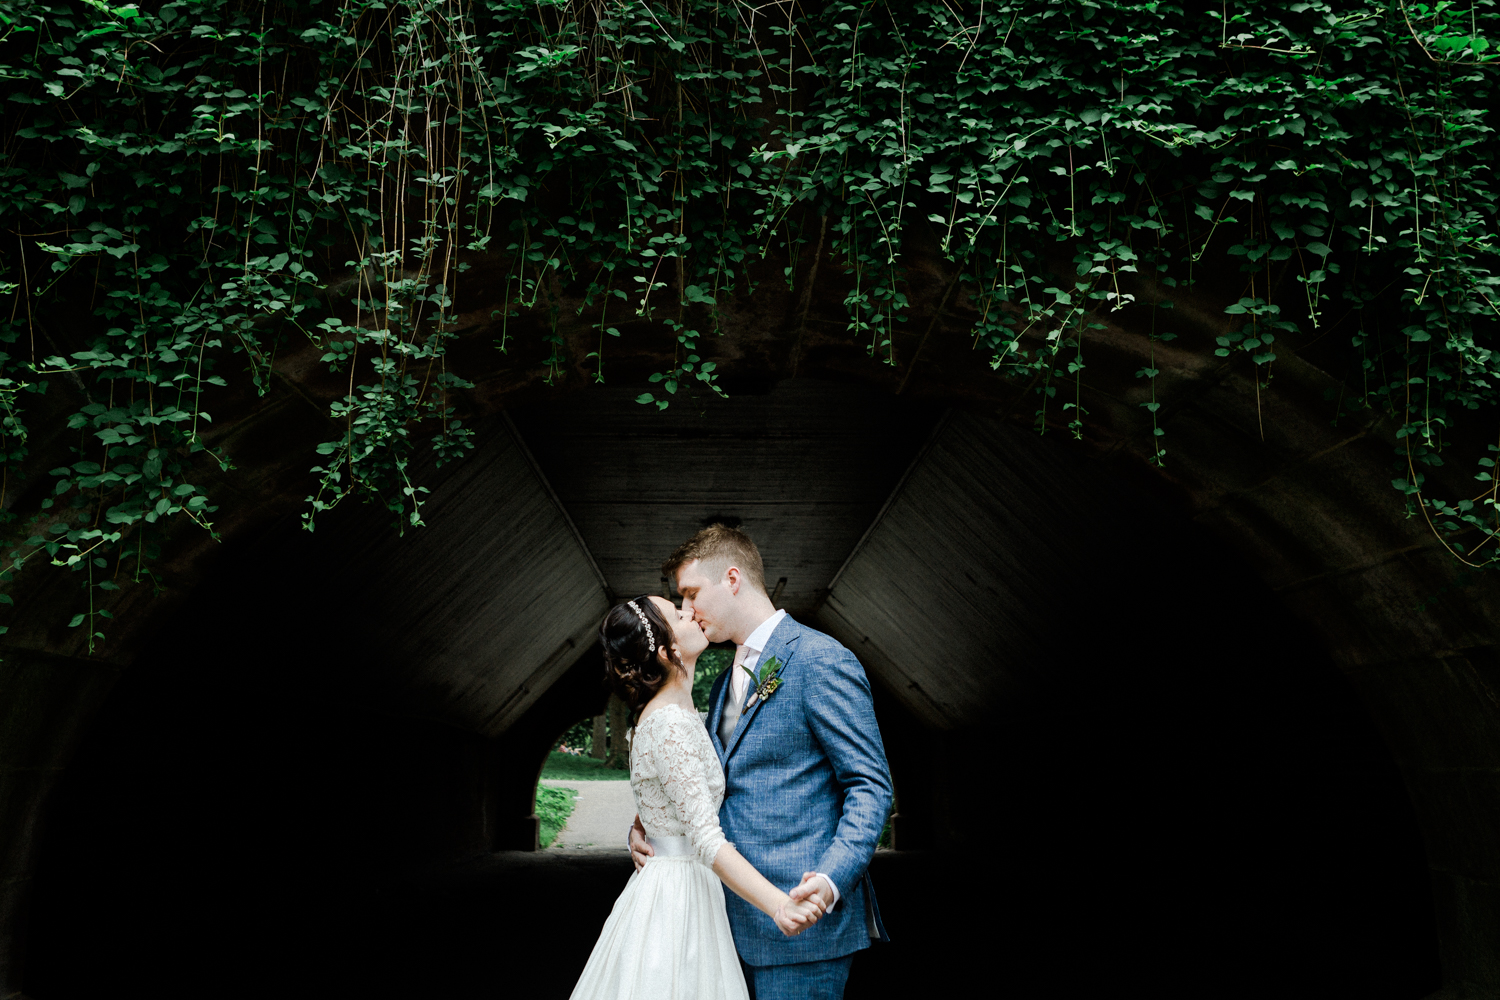 lissie_loomis_photo_nyc_brooklyn_wedding_engagement_photographer_photography-55.JPG